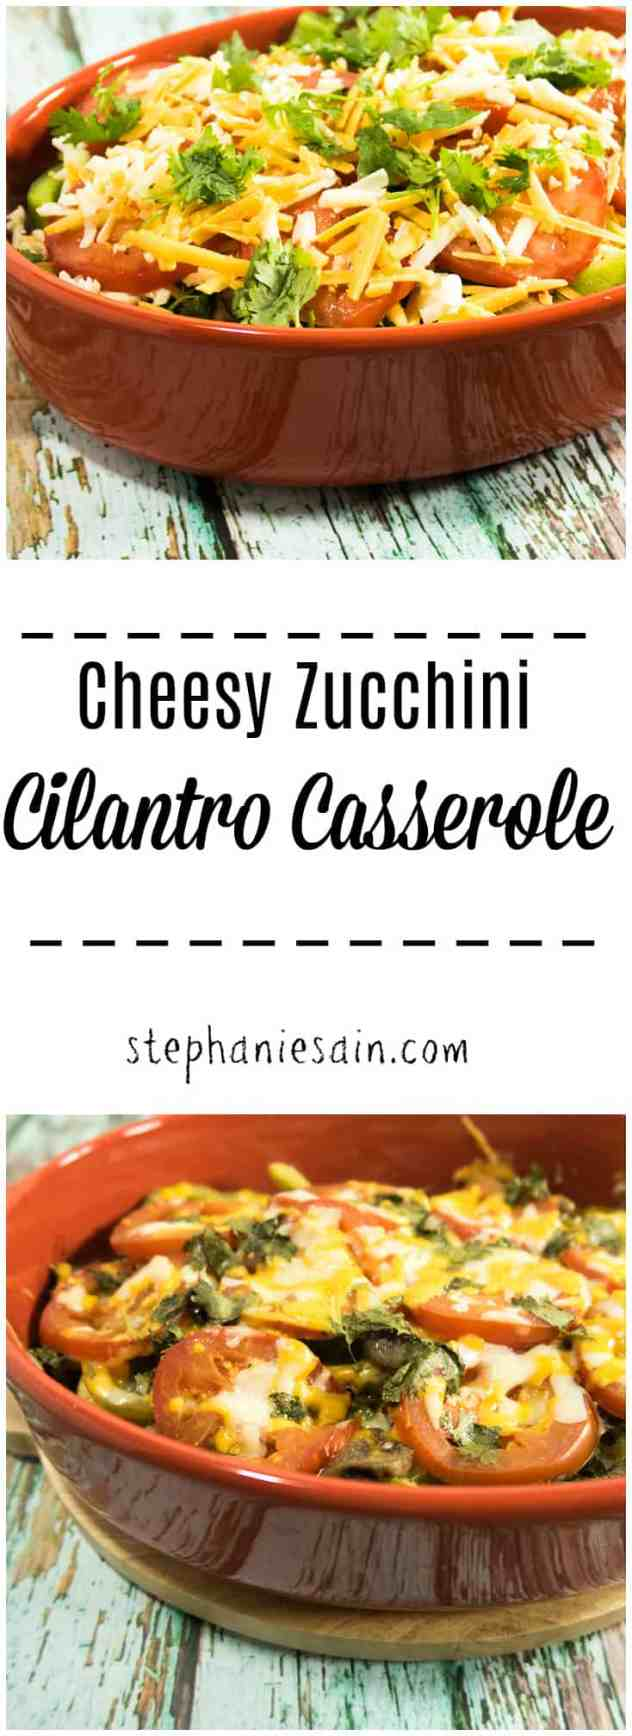 This Cheesy Zucchini Cilantro Casserole is an easy to prepare family friendly dinner perfect for any night of the week. Zucchini, cheese & fresh cilantro are the stars of this casserole. Gluten free & Vegetarian.